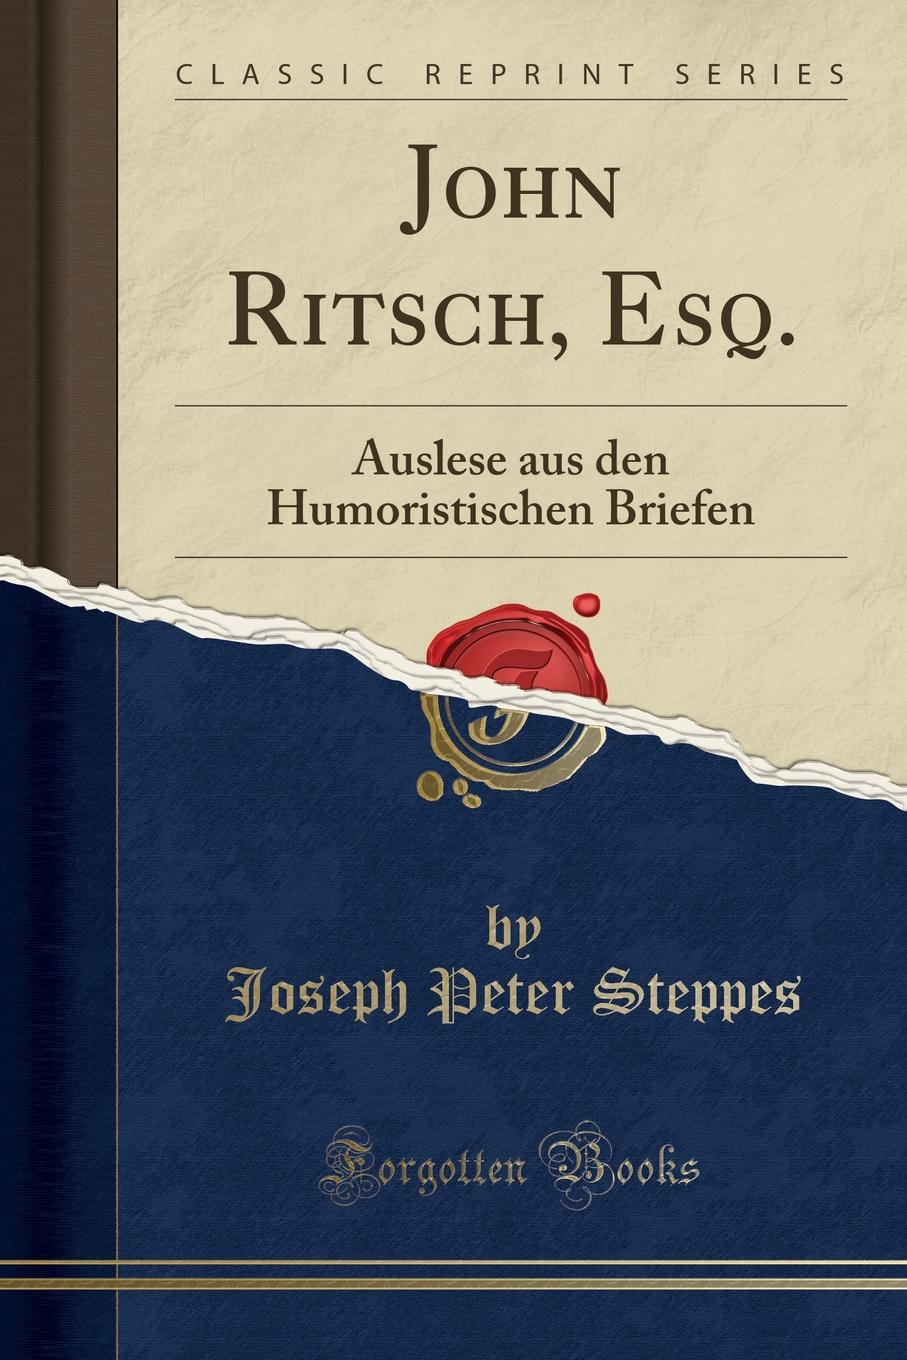 Joseph Peter Steppes John Ritsch, Esq. Auslese aus den Humoristischen Briefen (Classic Reprint) francis valpy etymological dictionary of the latin language